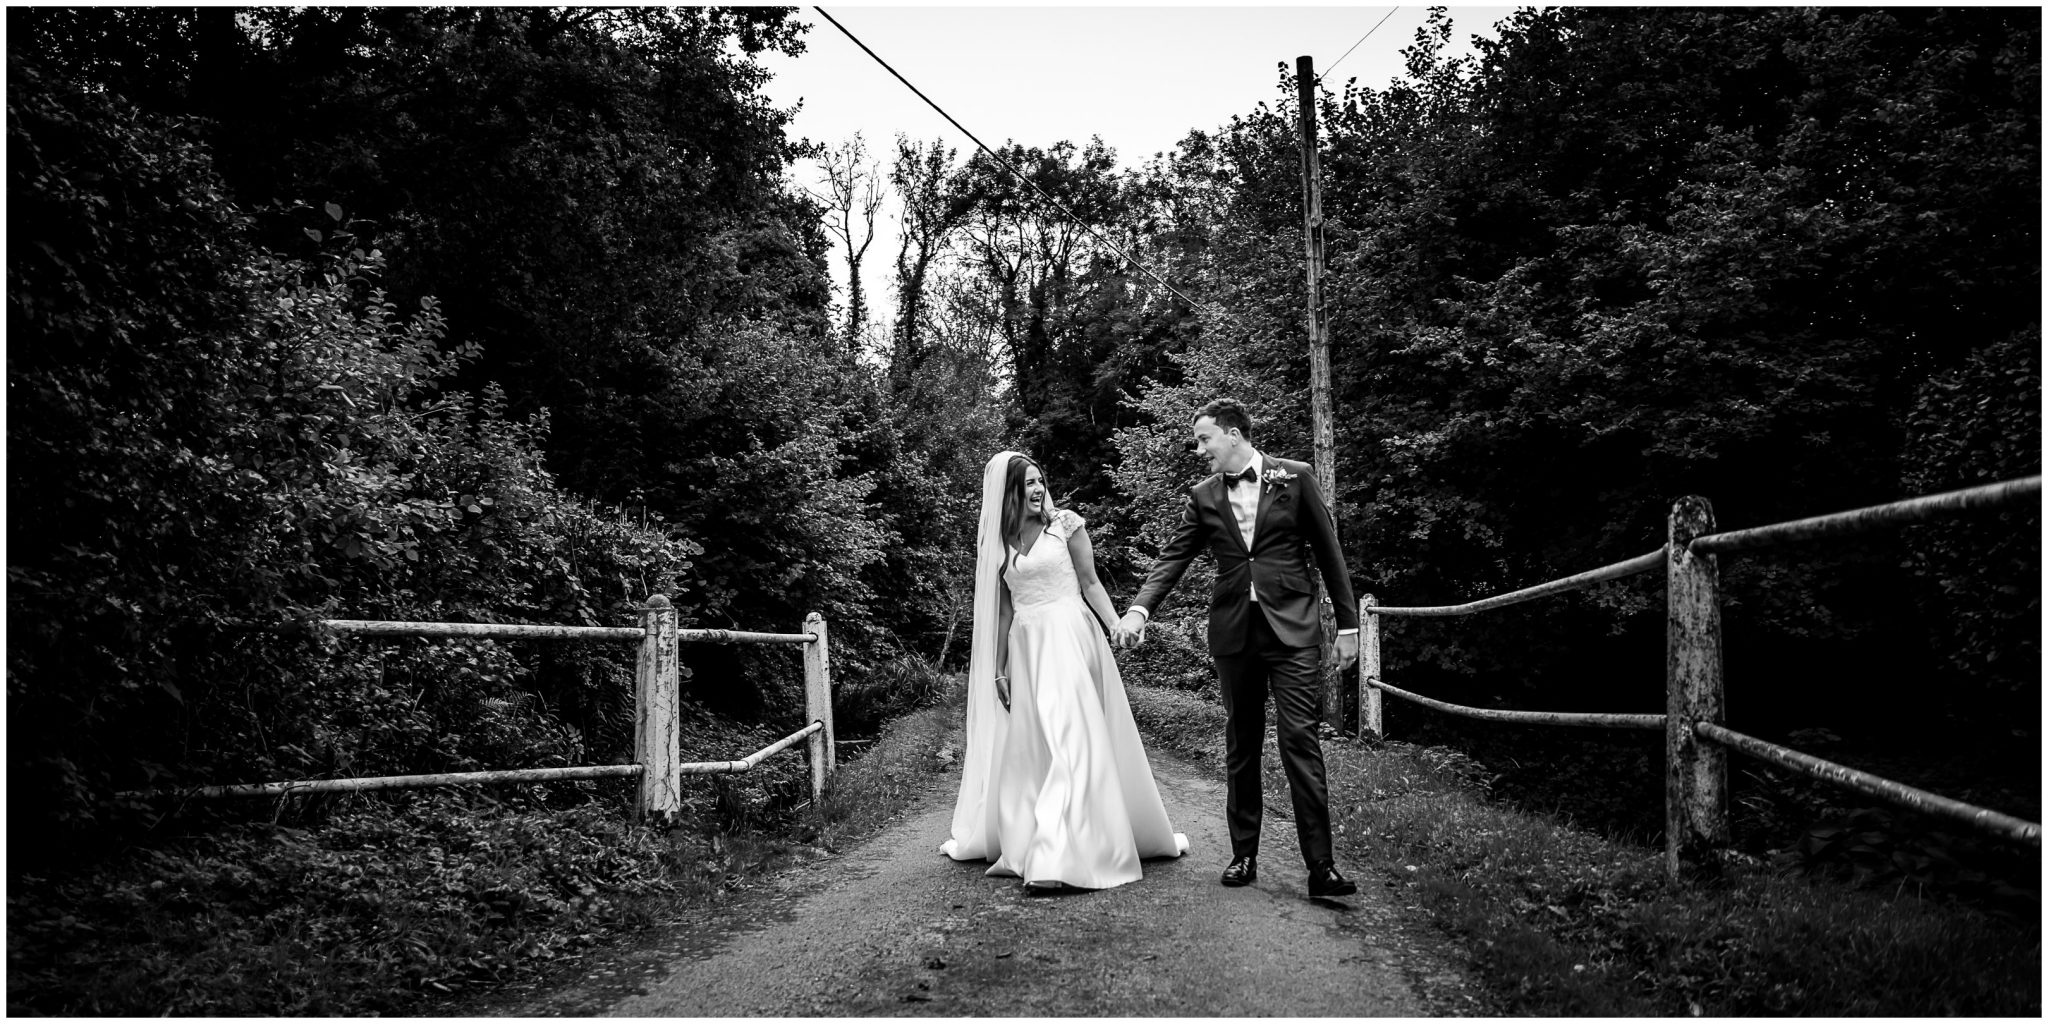 The couple walk along a country lane